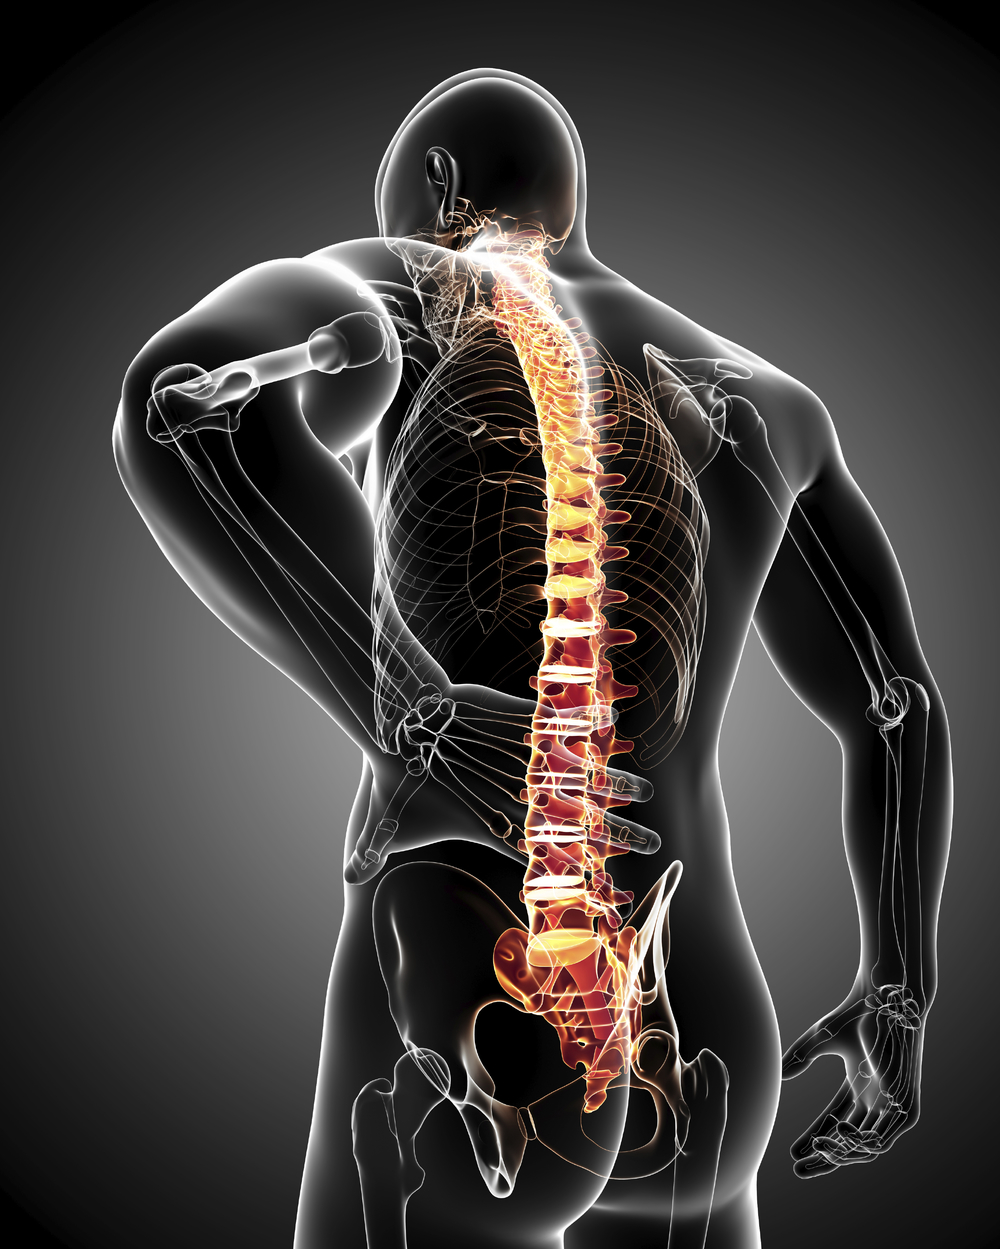 A Spinal Xray will help identify any issues with the spine other related ailments.